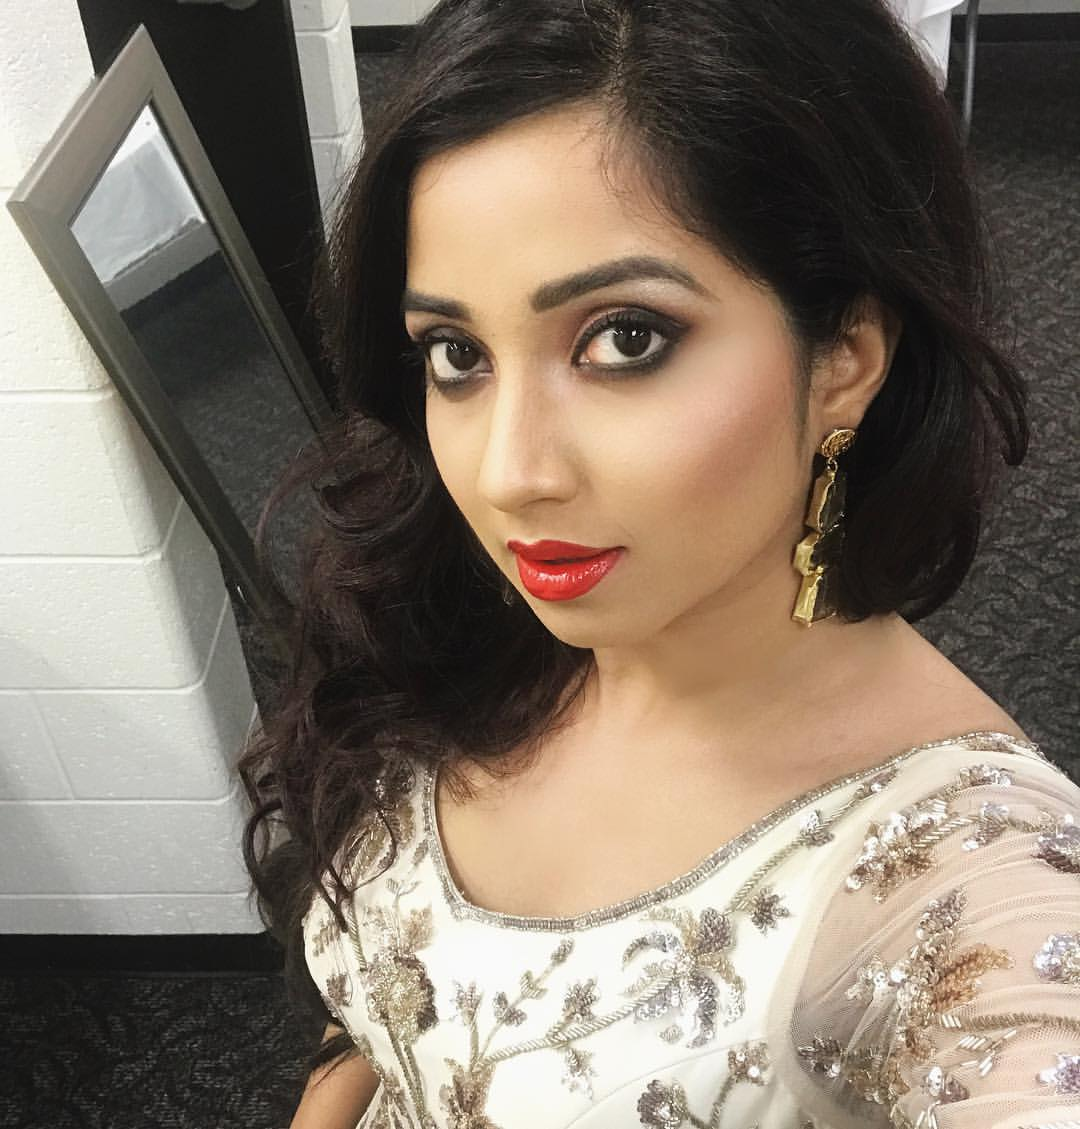 Desi Actress - Pixerdesi Shreya Ghoshal Has Cute Face -8068